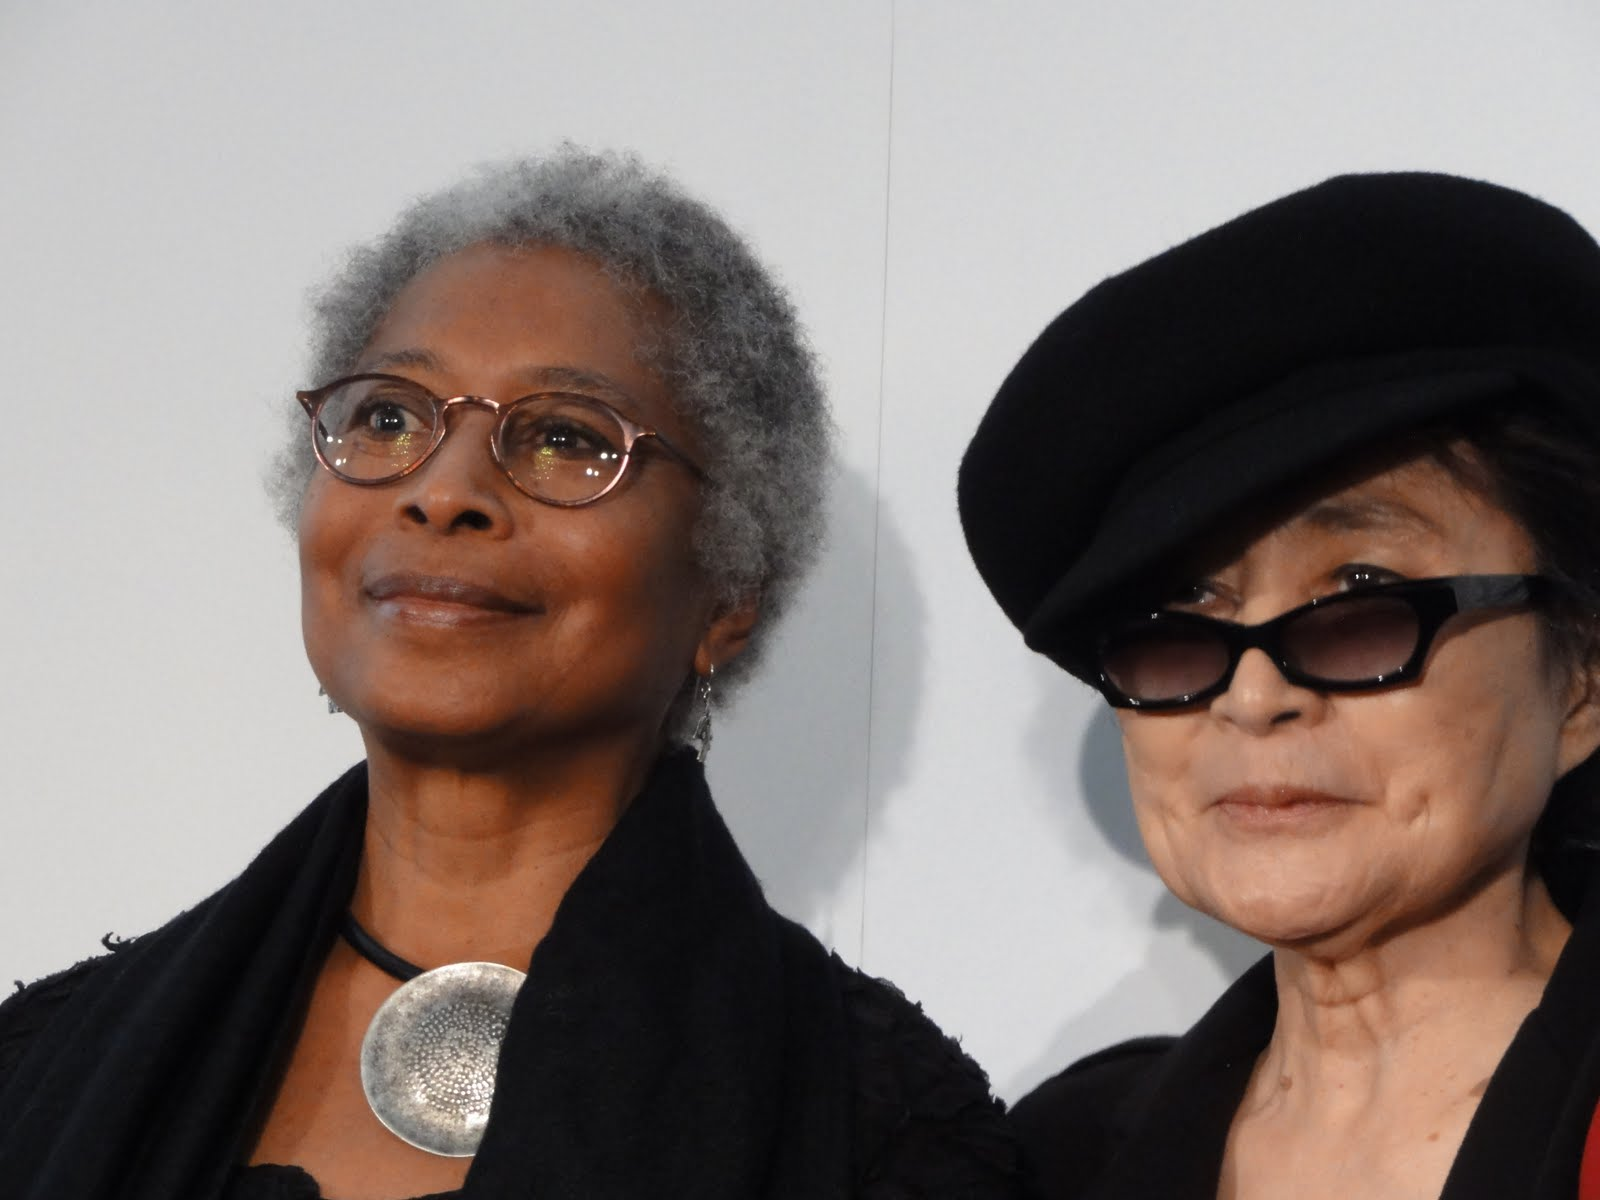 alice walker beauty Moment #1: alice walker presents in the introduction that when she was younger, she knew that she was the prettiest and her parents would always spoil her.